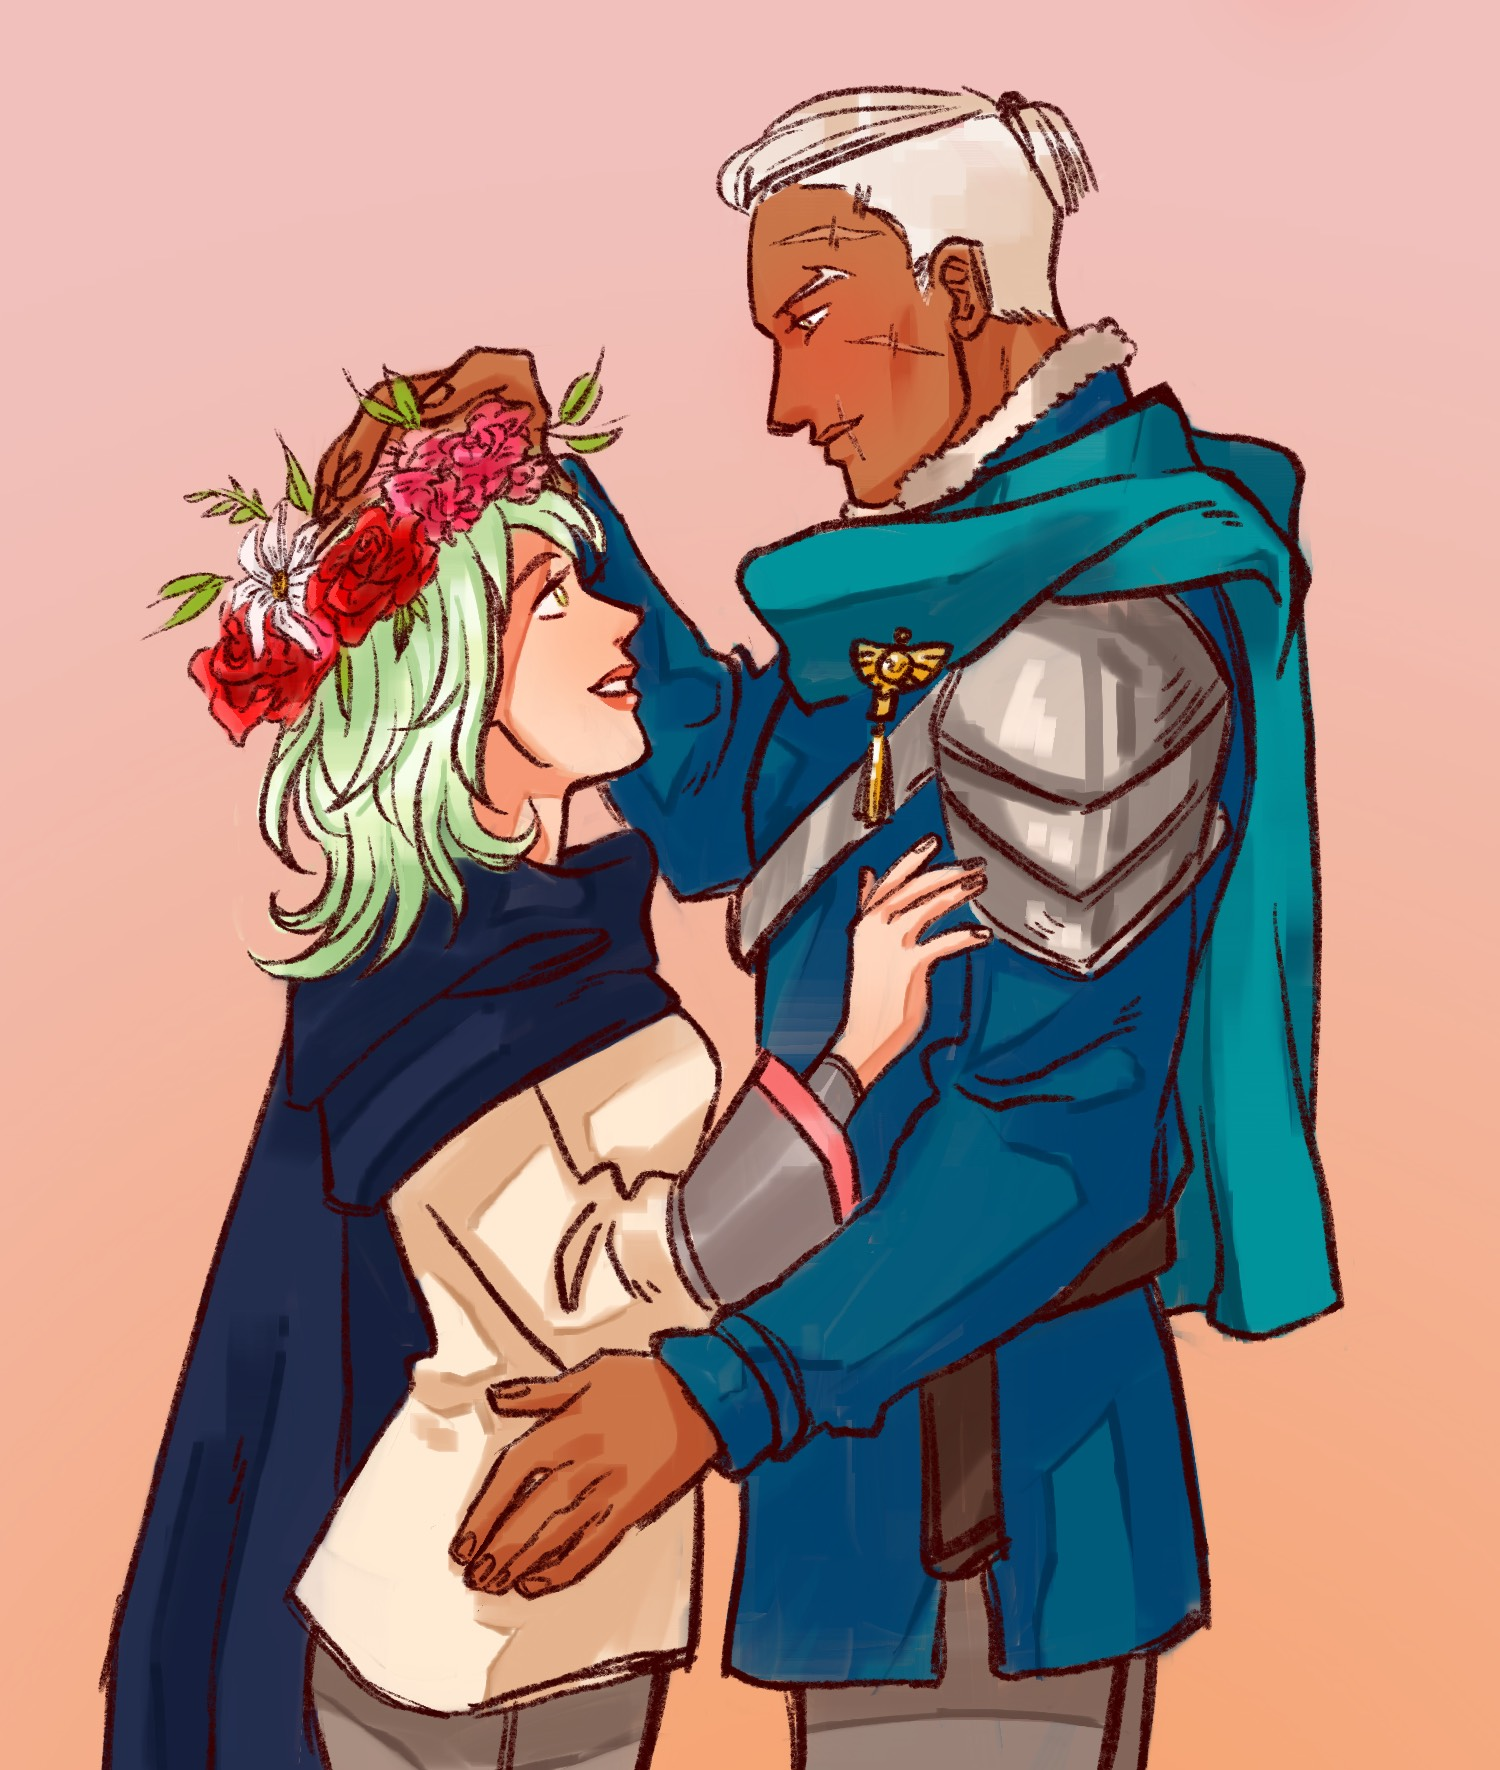 Dedue stares down at Byleth, adjusting a flower crown on her hair that he has made for her.